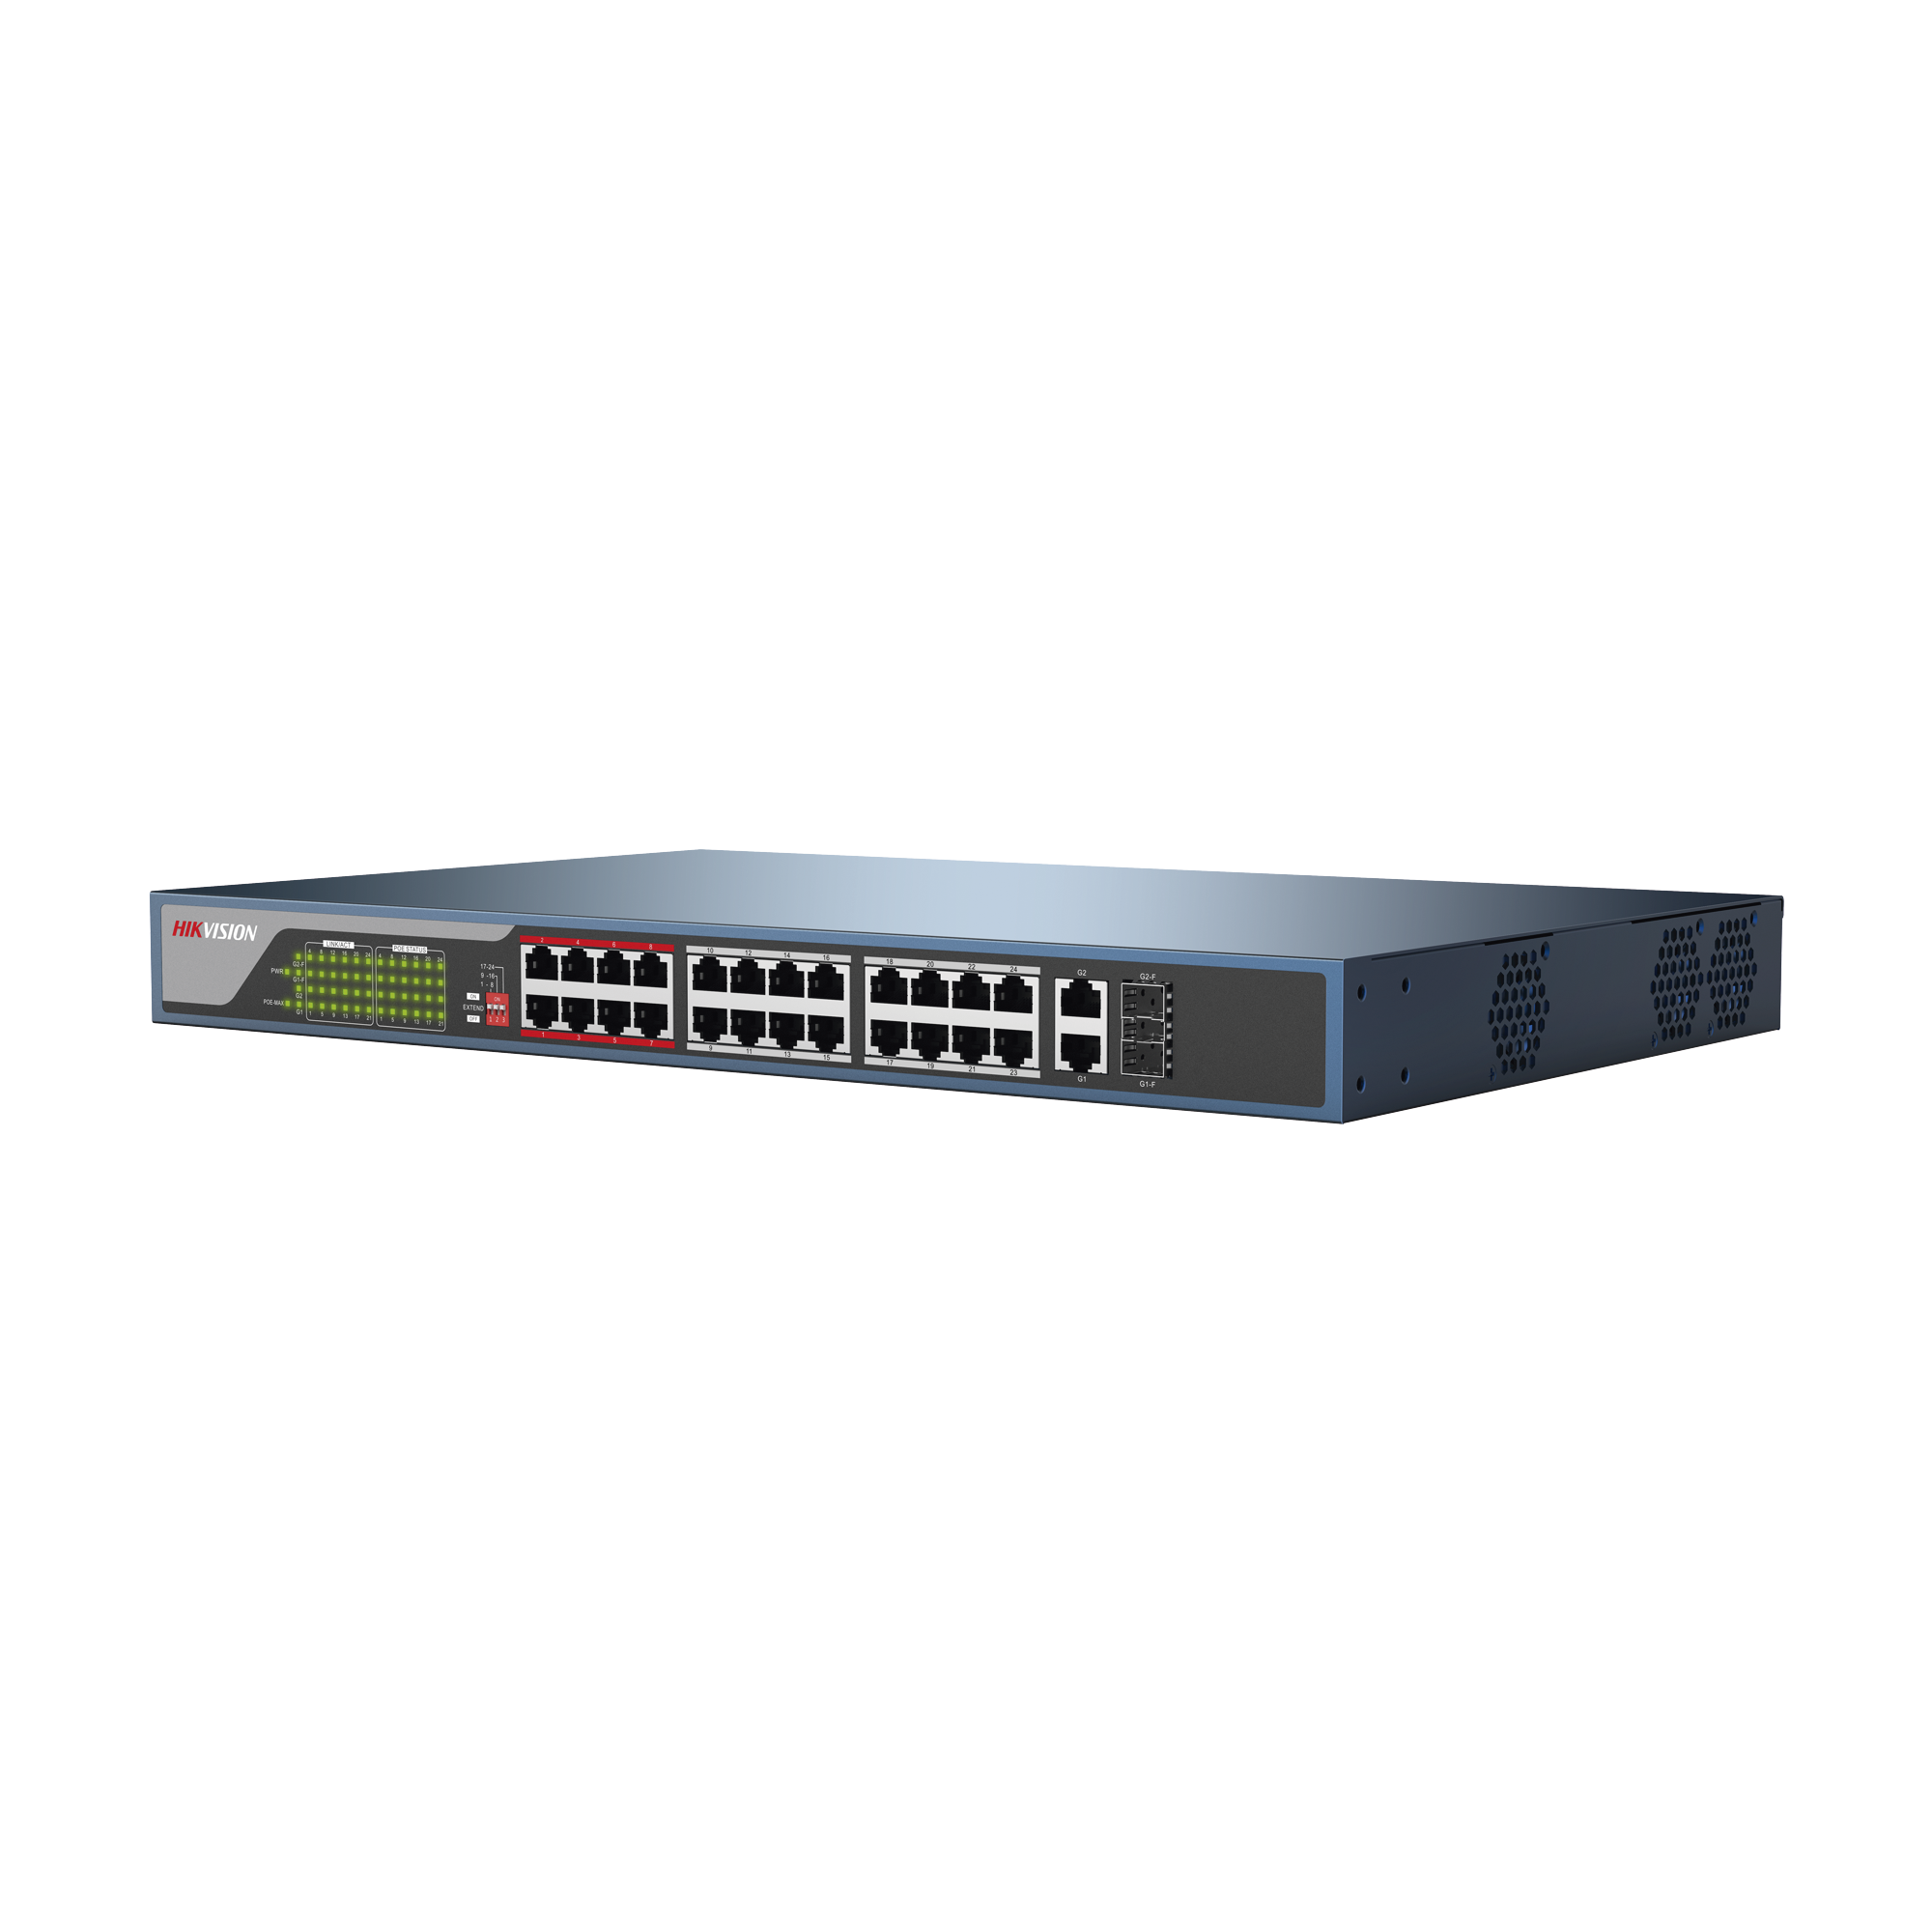 Switch No Administrable 24 Puertos PoE+ 100 Mbps / Switch PoE 250 mts Larga Distancia / 2 Puertos SFP / 2 Puertos Gigabit / 370 Watts Total